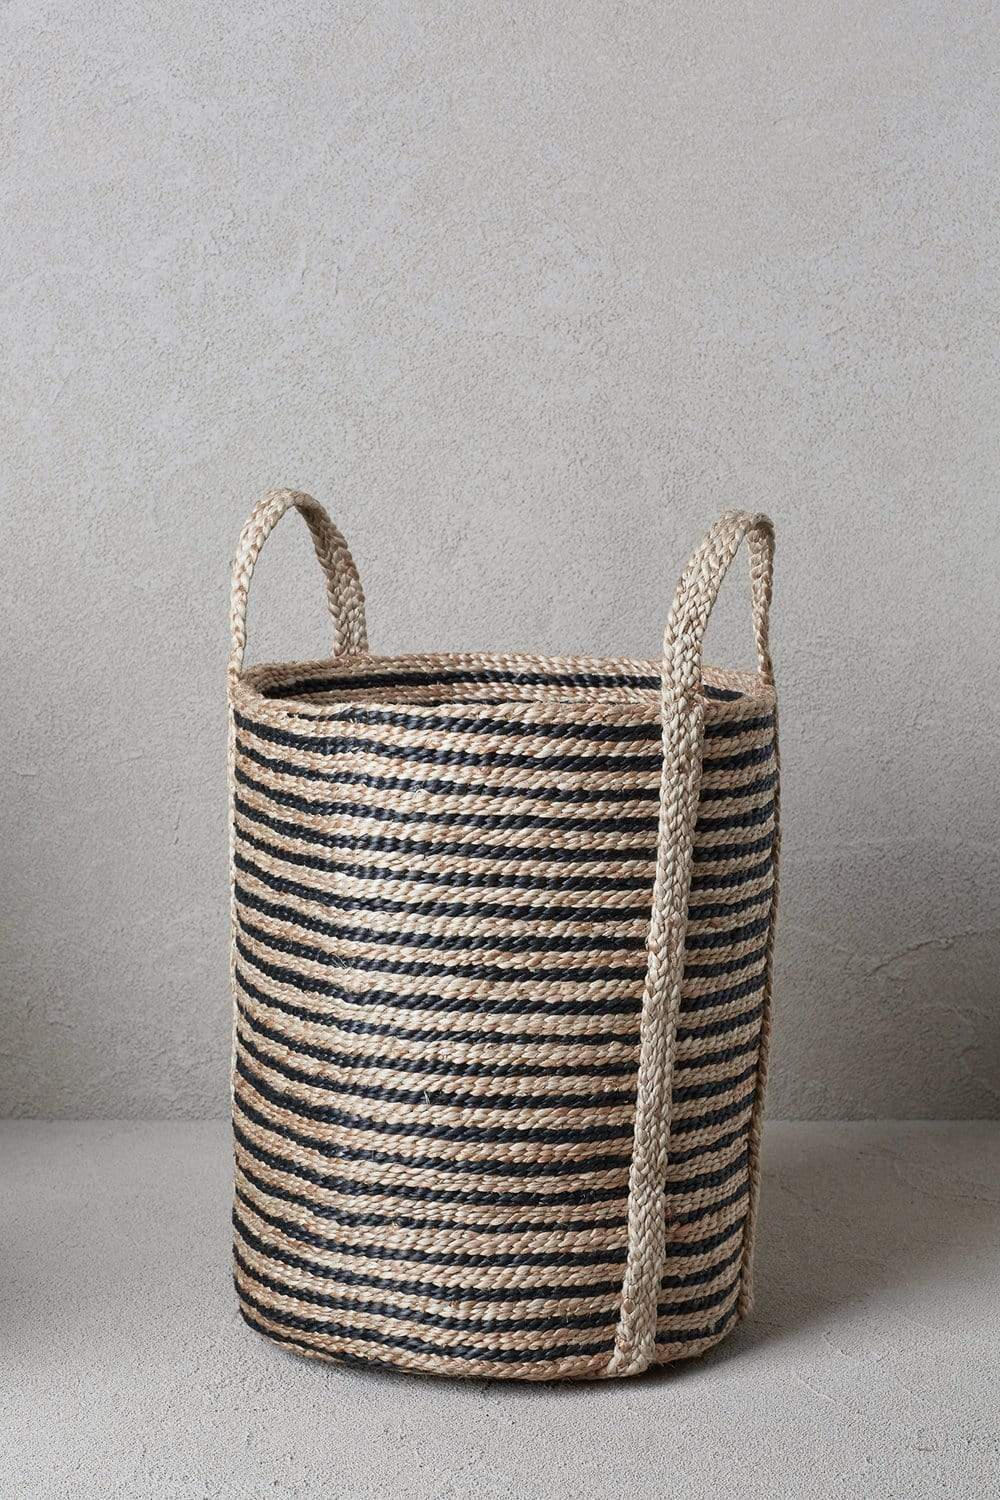 The Dharma Door Baskets and Storage Jute Laundry Basket - Striped